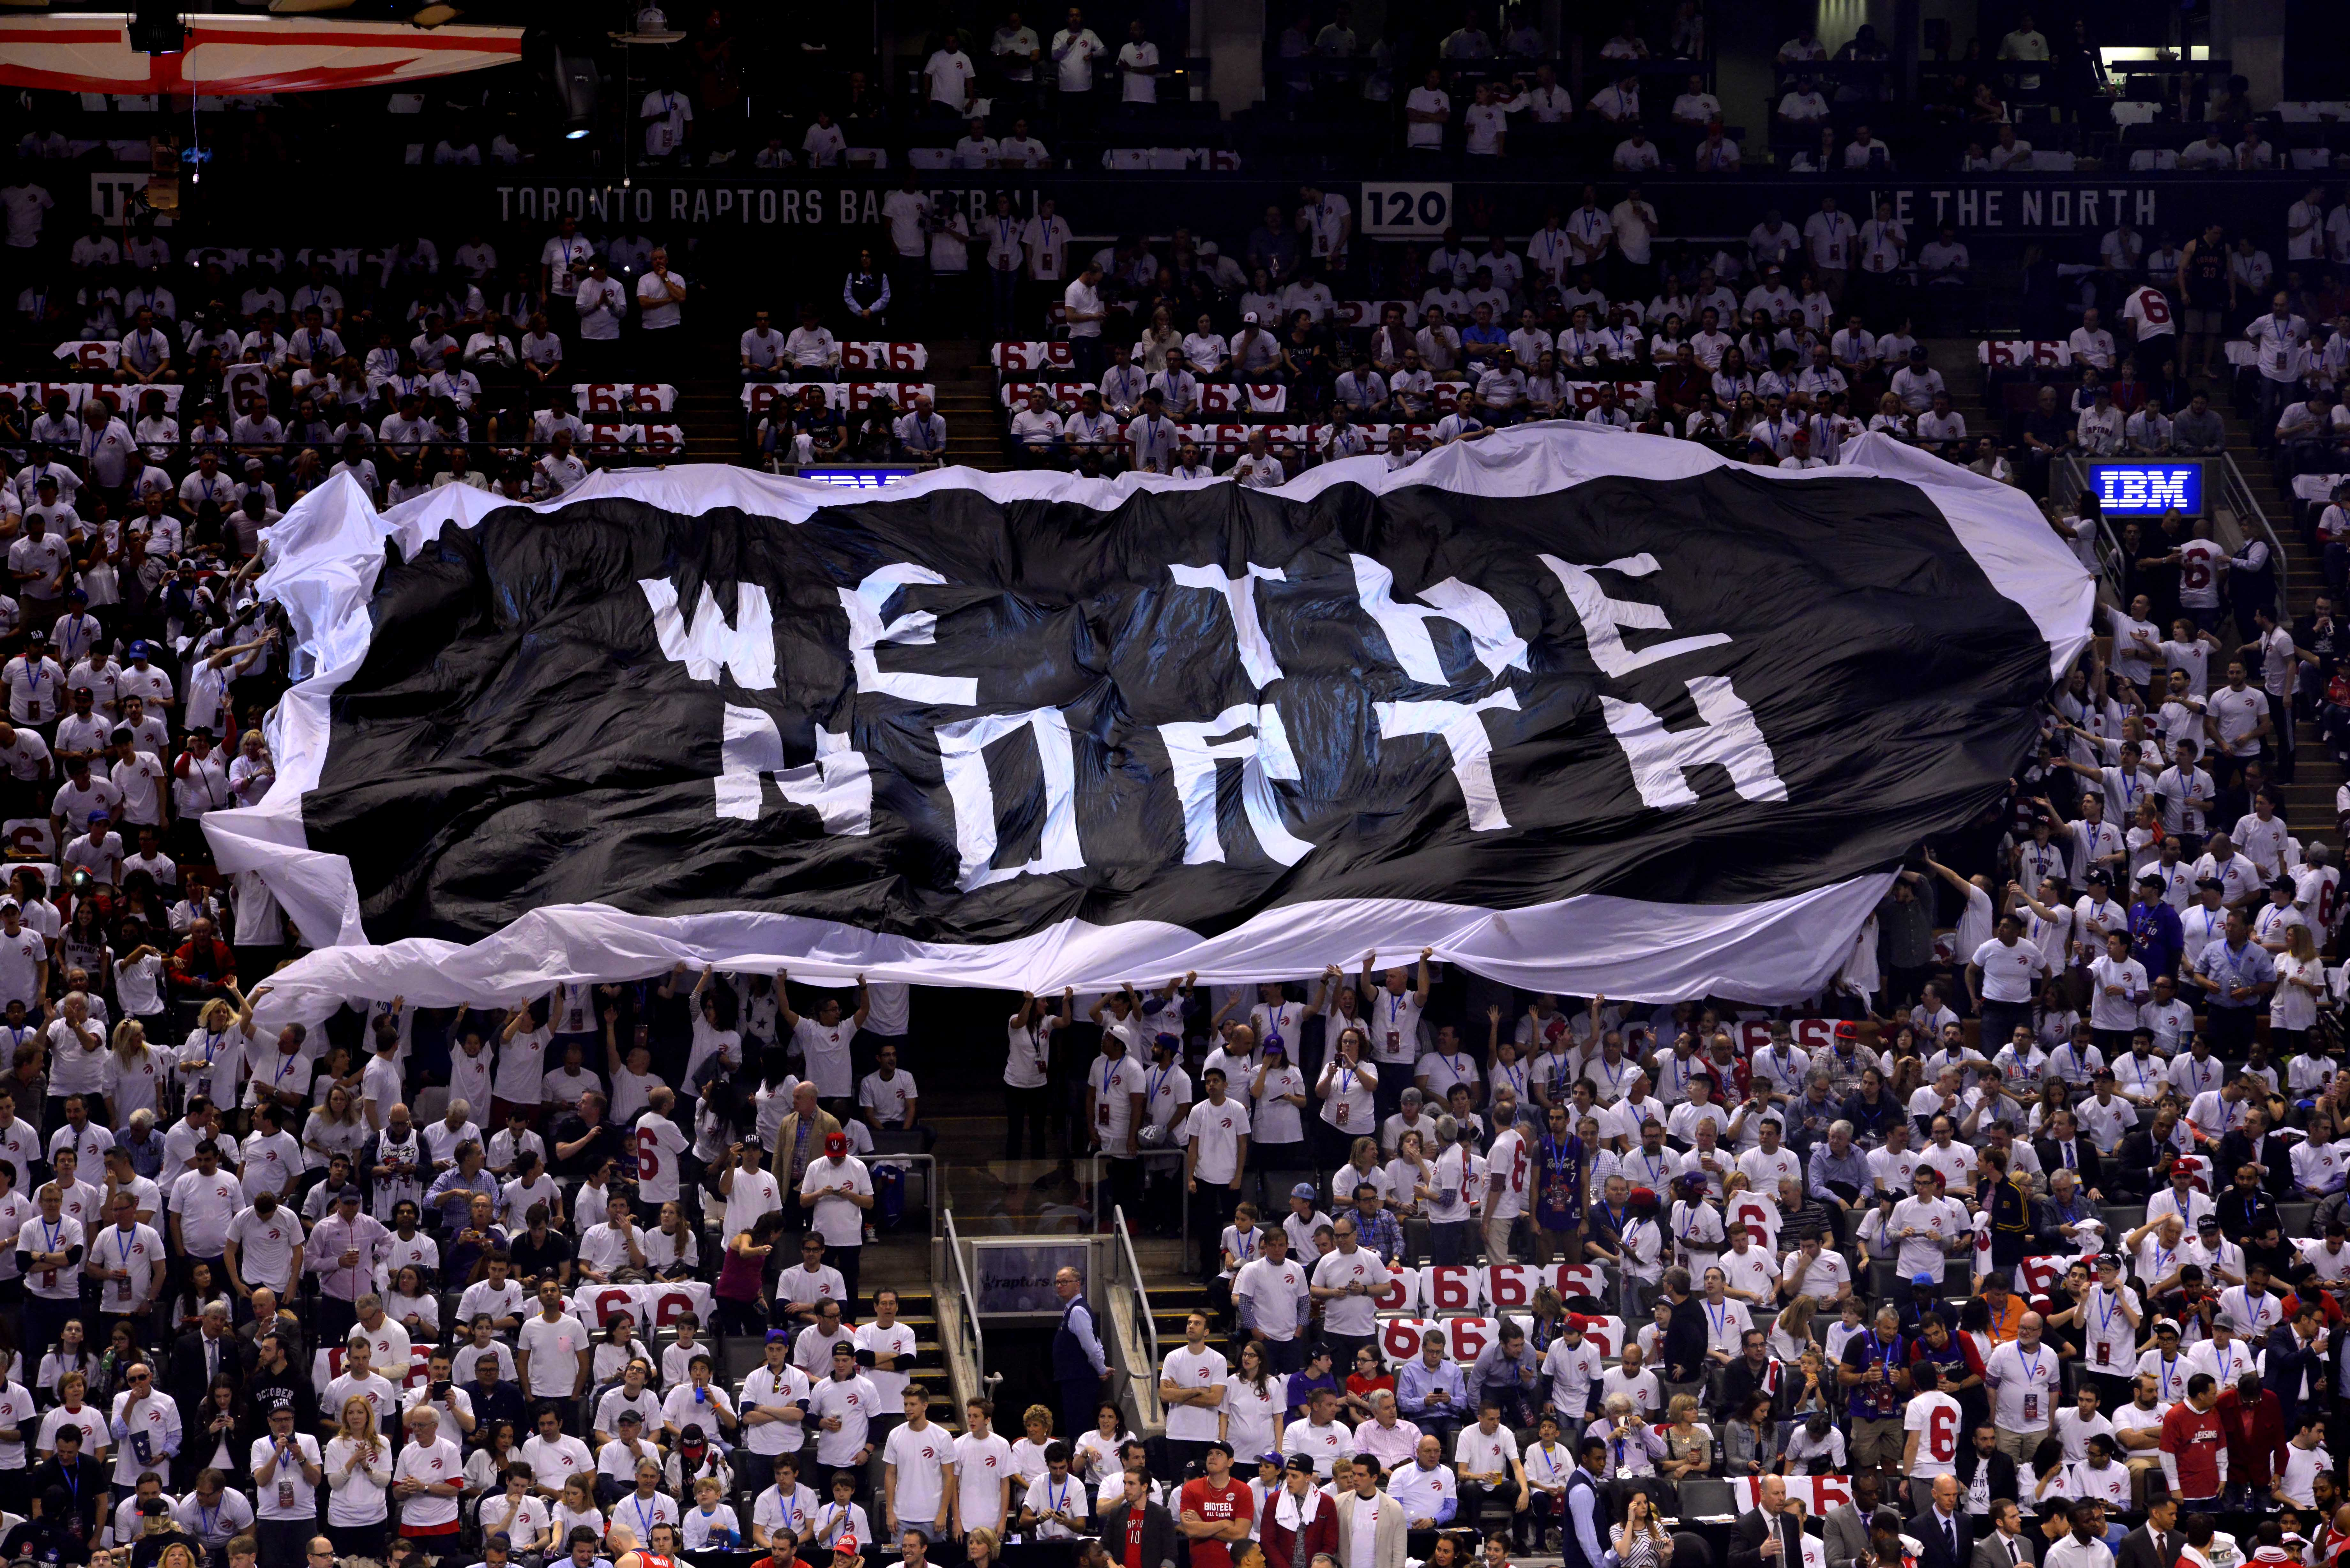 """TORONTO, CA - APRIL 18: An overall view of the Air Canada Centre while the fans pass around the """"WE ARE THE NORTH"""" flag during Game One of the Eastern Conference Playoffs Washington Wizards against the Toronto Raptors on April 18, 2015 in Toronto, Canada. NOTE TO USER: User expressly acknowledges and agrees that, by downloading and or using this photograph, User is consenting to the terms and conditions of the Getty Images License Agreement. Mandatory Copyright Notice: Copyright 2015 NBAE (Photo by David Dow/NBAE via Getty Images)"""